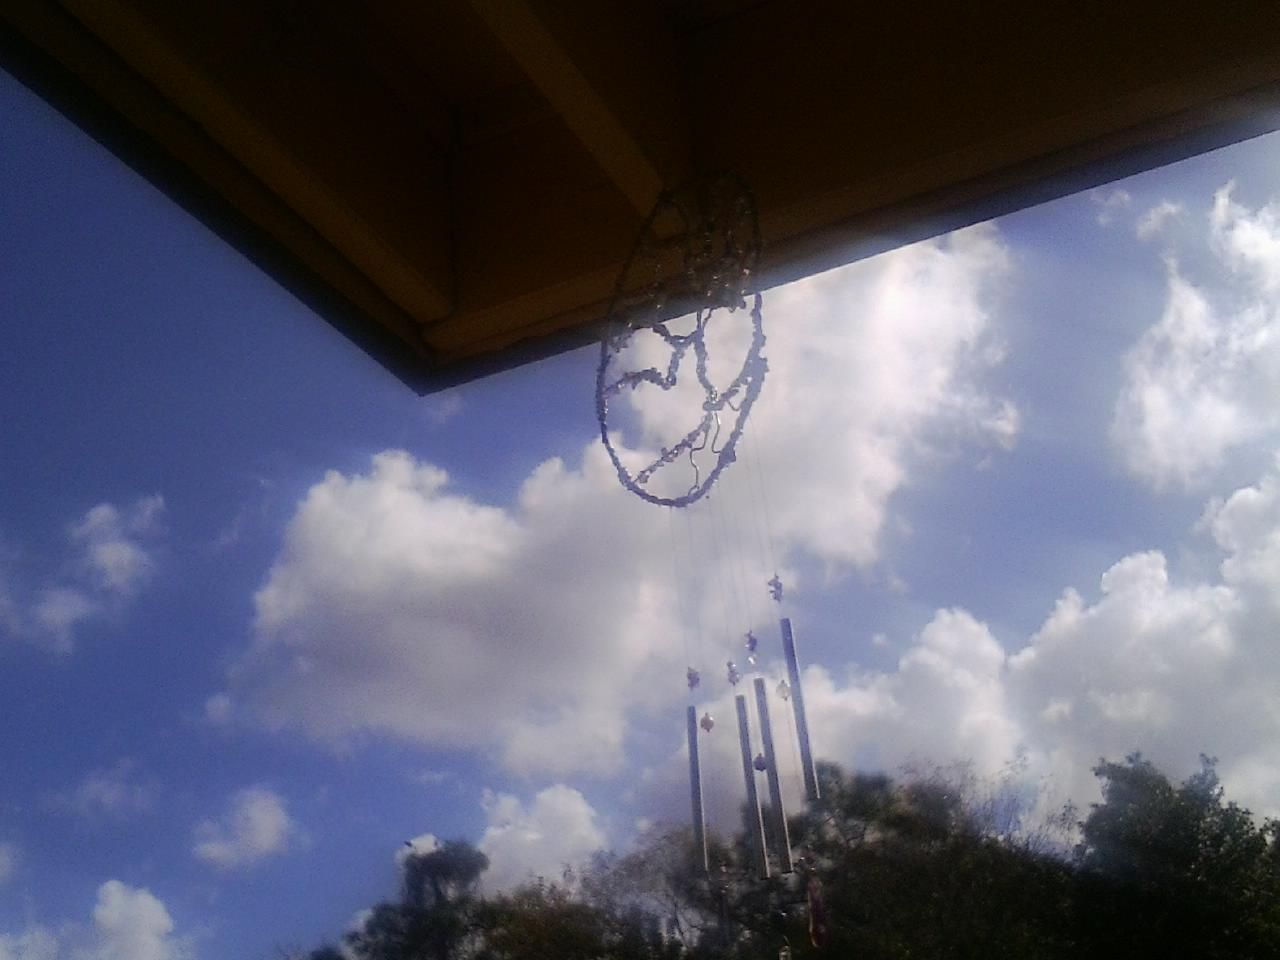 Hanging outside on my deck :)